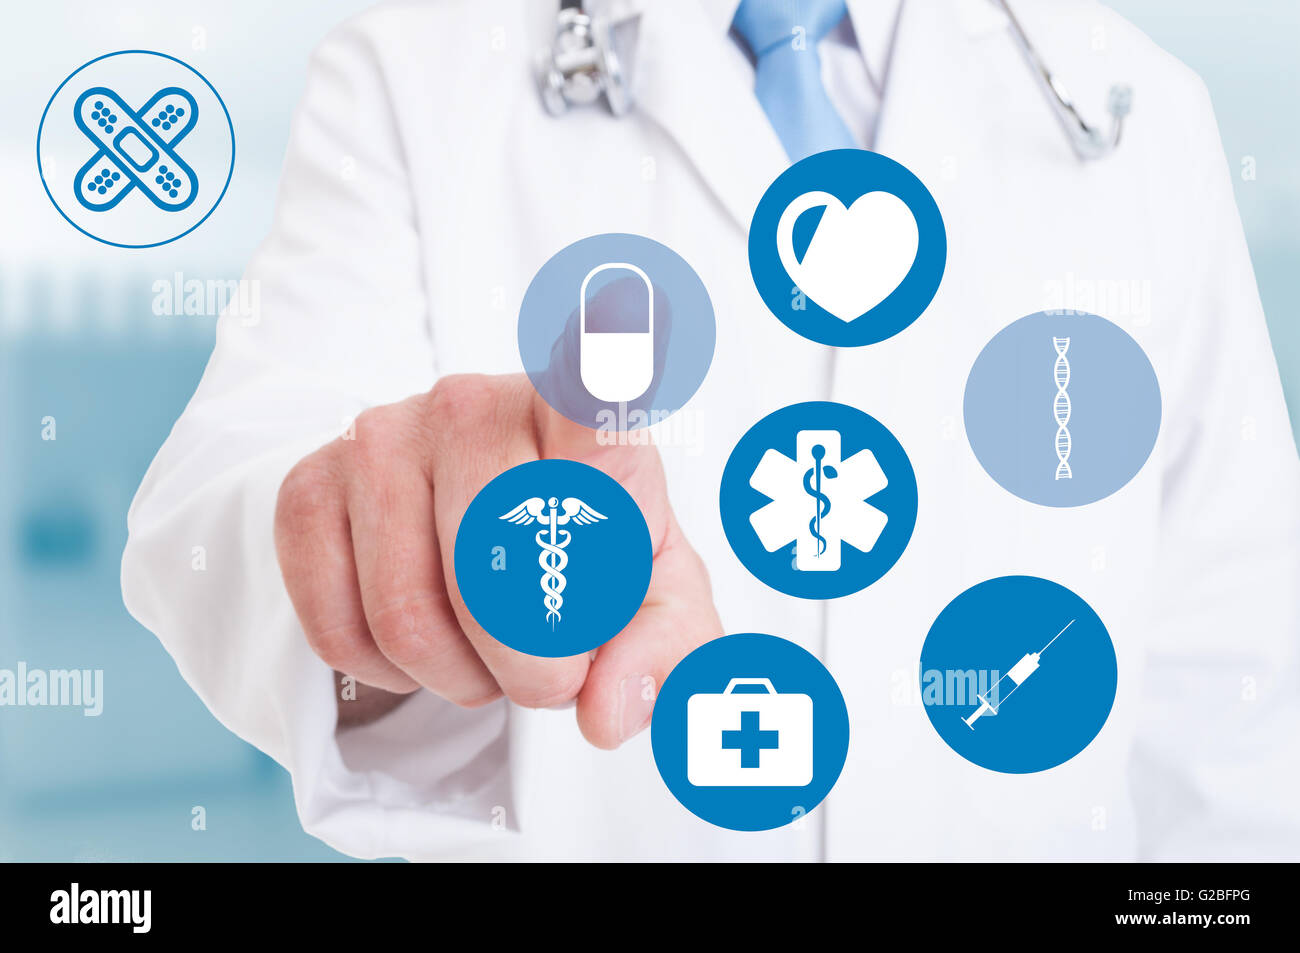 modern medical technology The resources found here will help you understand how technology influences human existence by examining the benefits and risks of different biotechnological advances to technological advances in the field of medicine medical advances have unforeseen consequences.